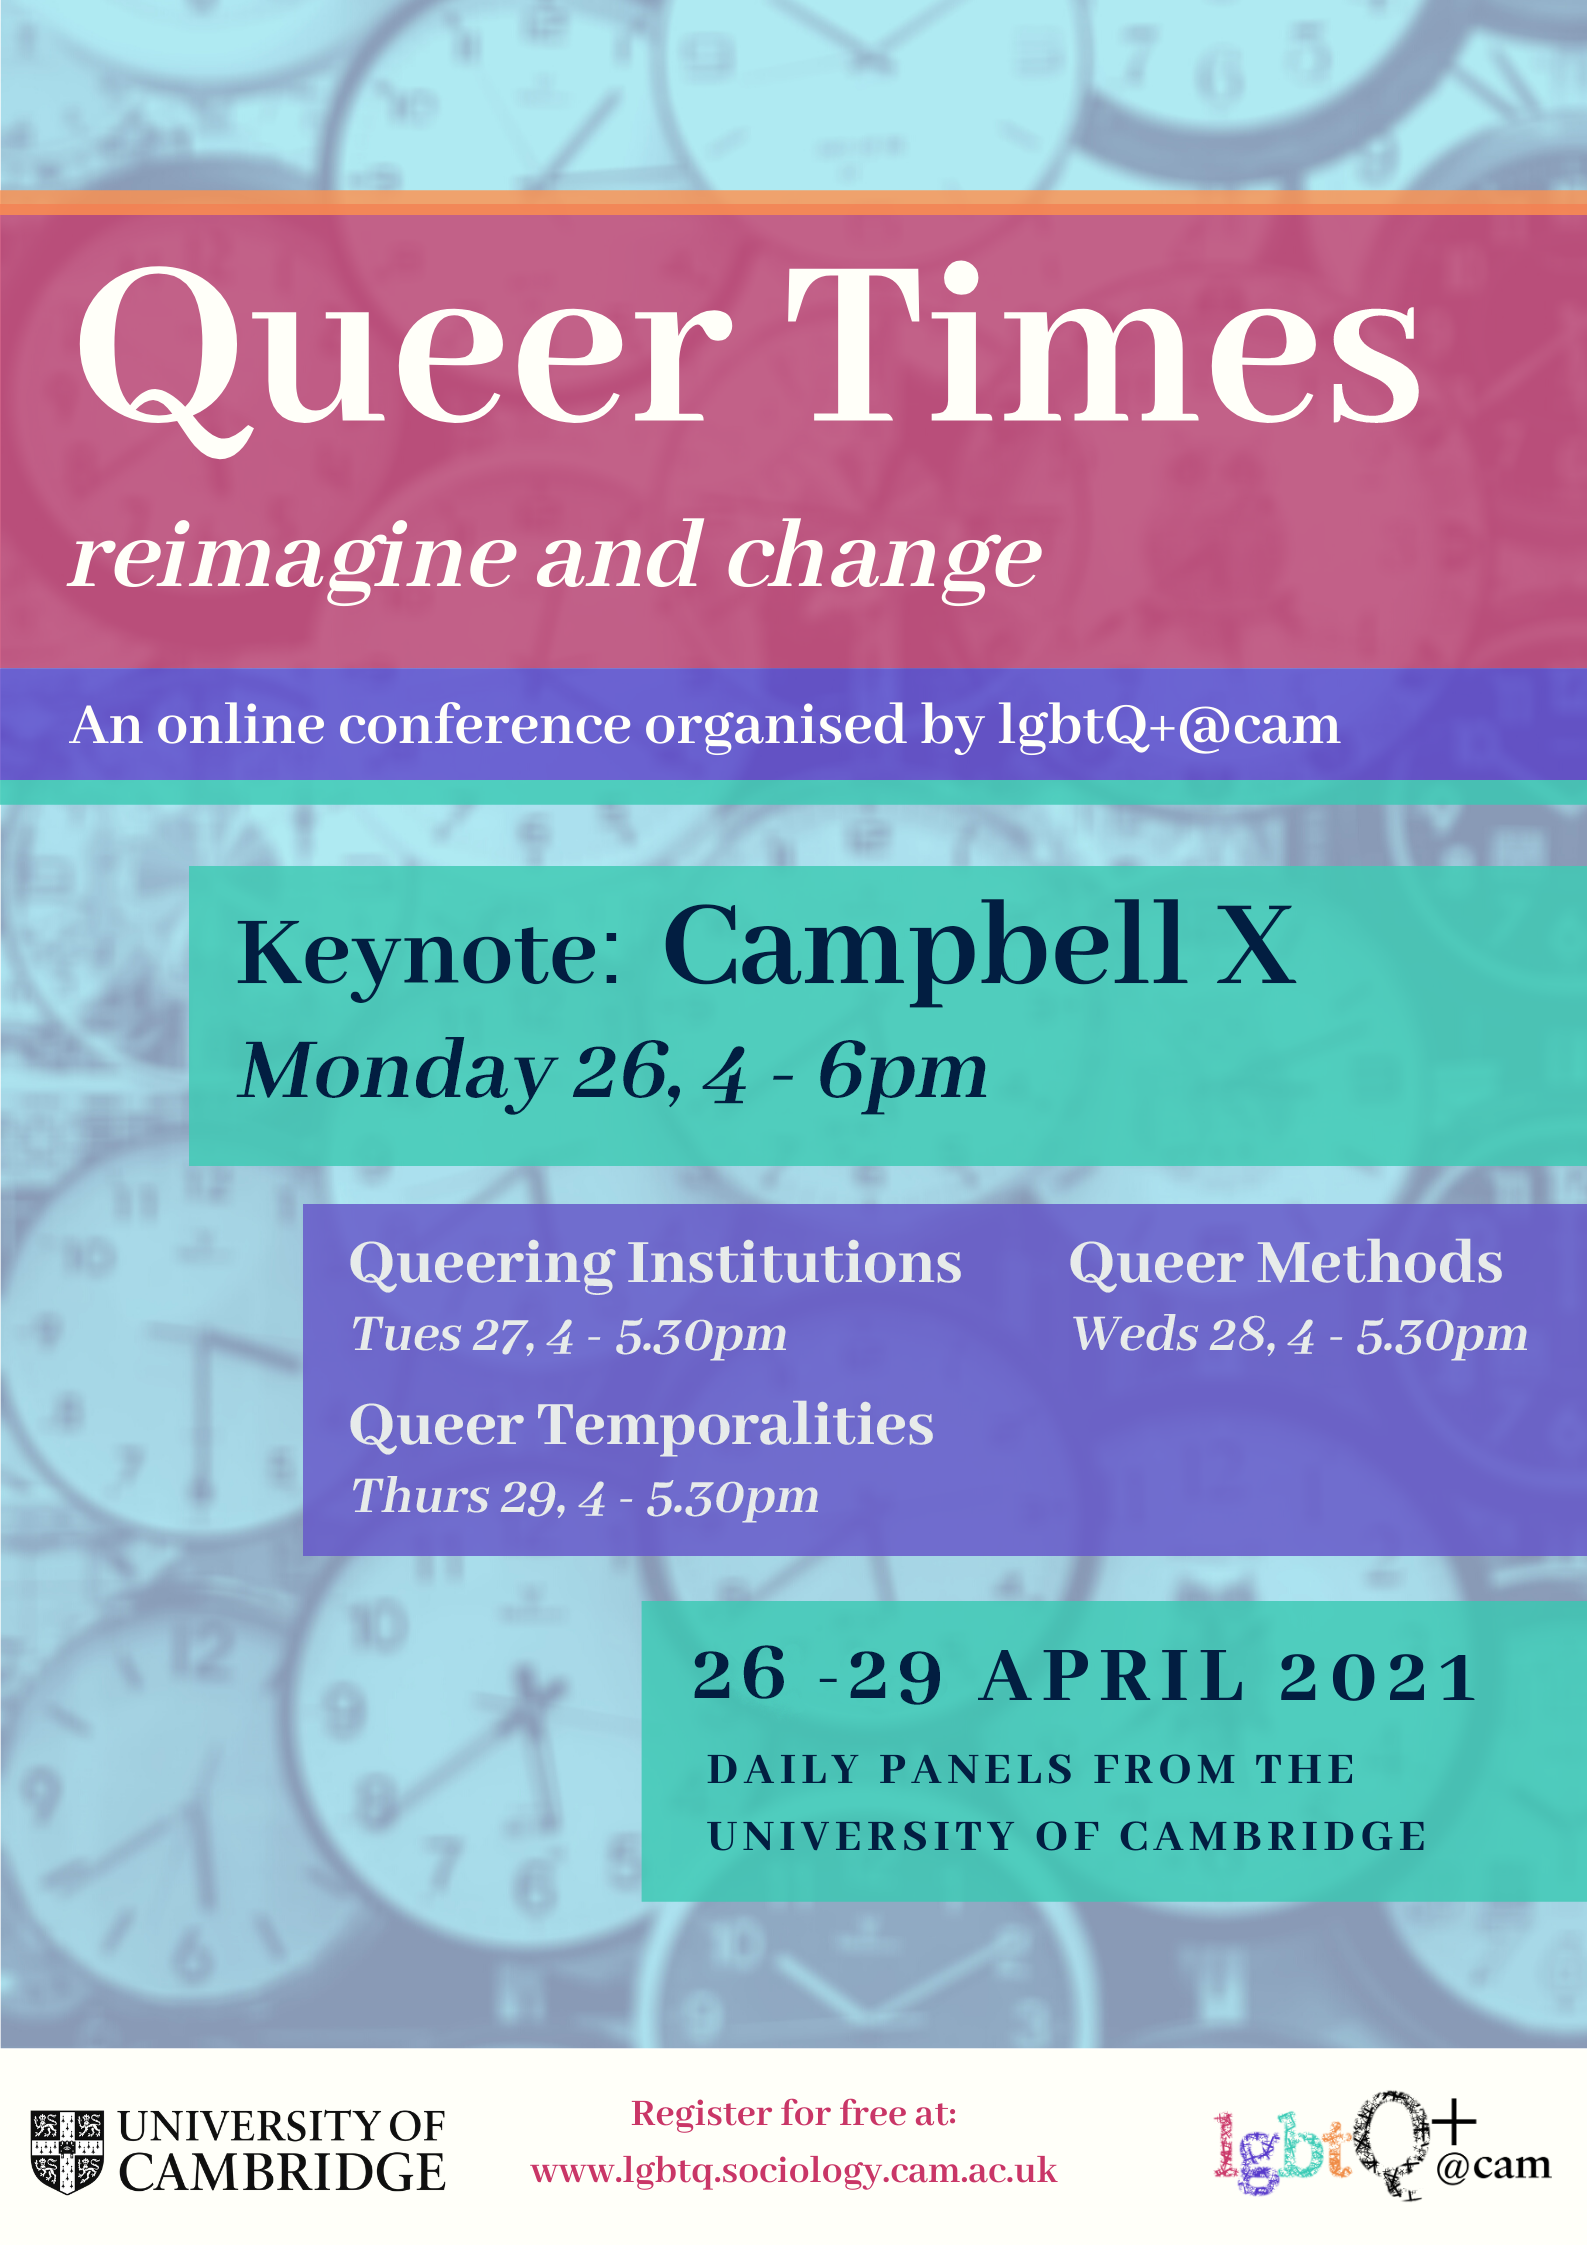 Queer Times 2021 poster - 26th - 29th April 2021